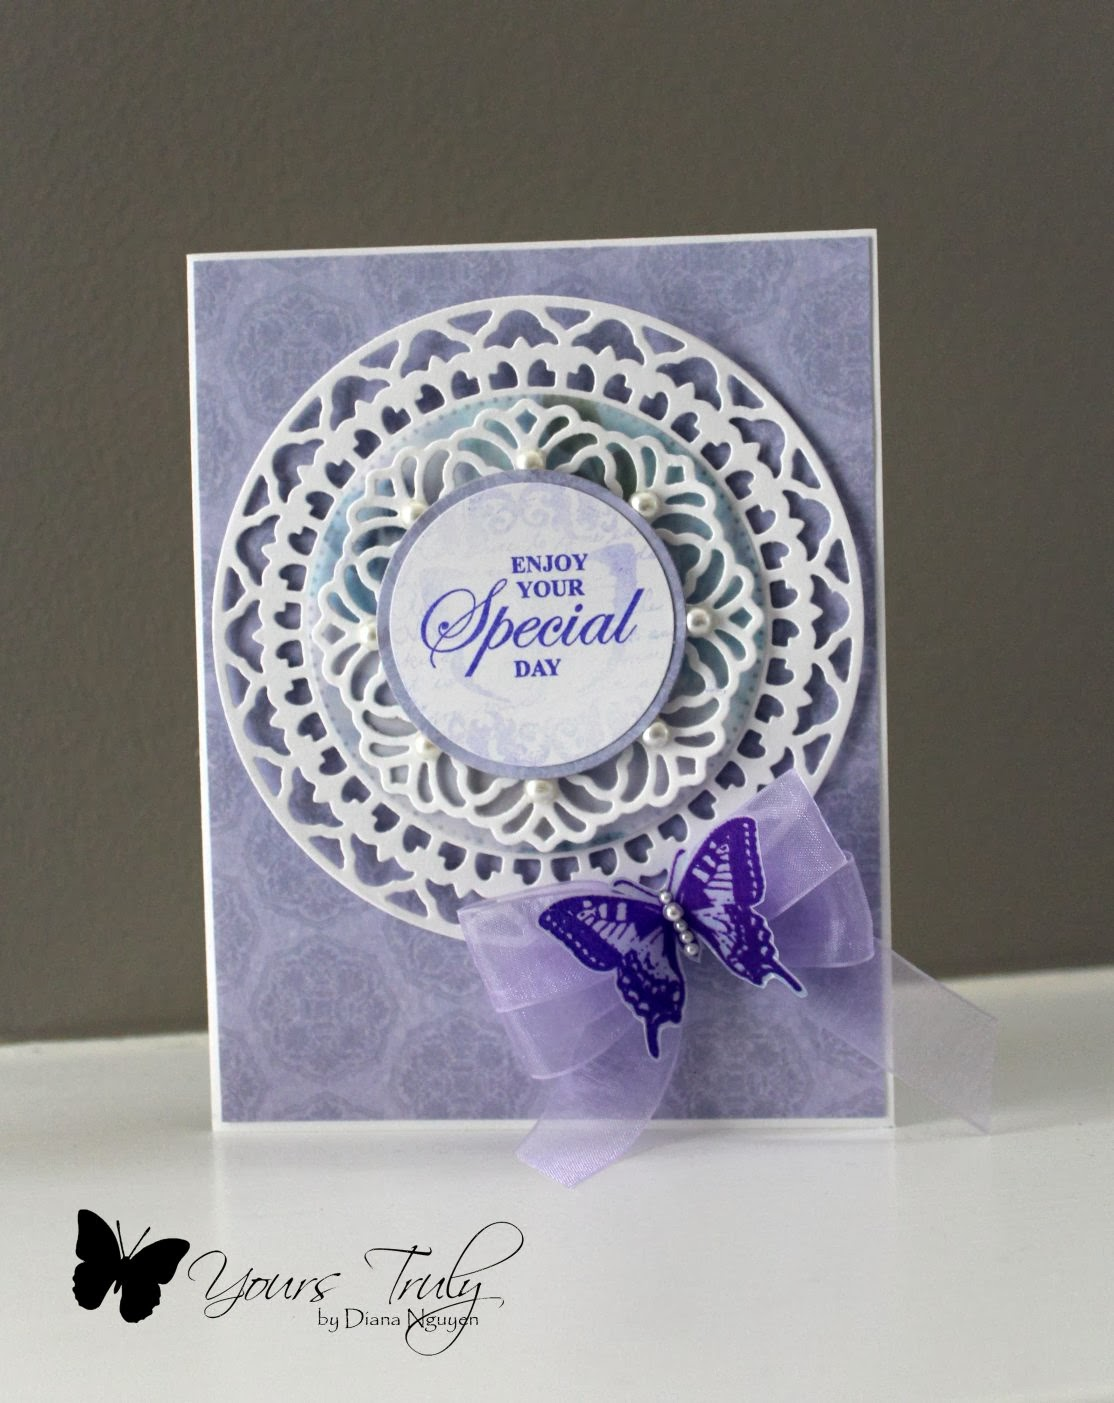 Diana Nguyen, JustRite, handmade cards